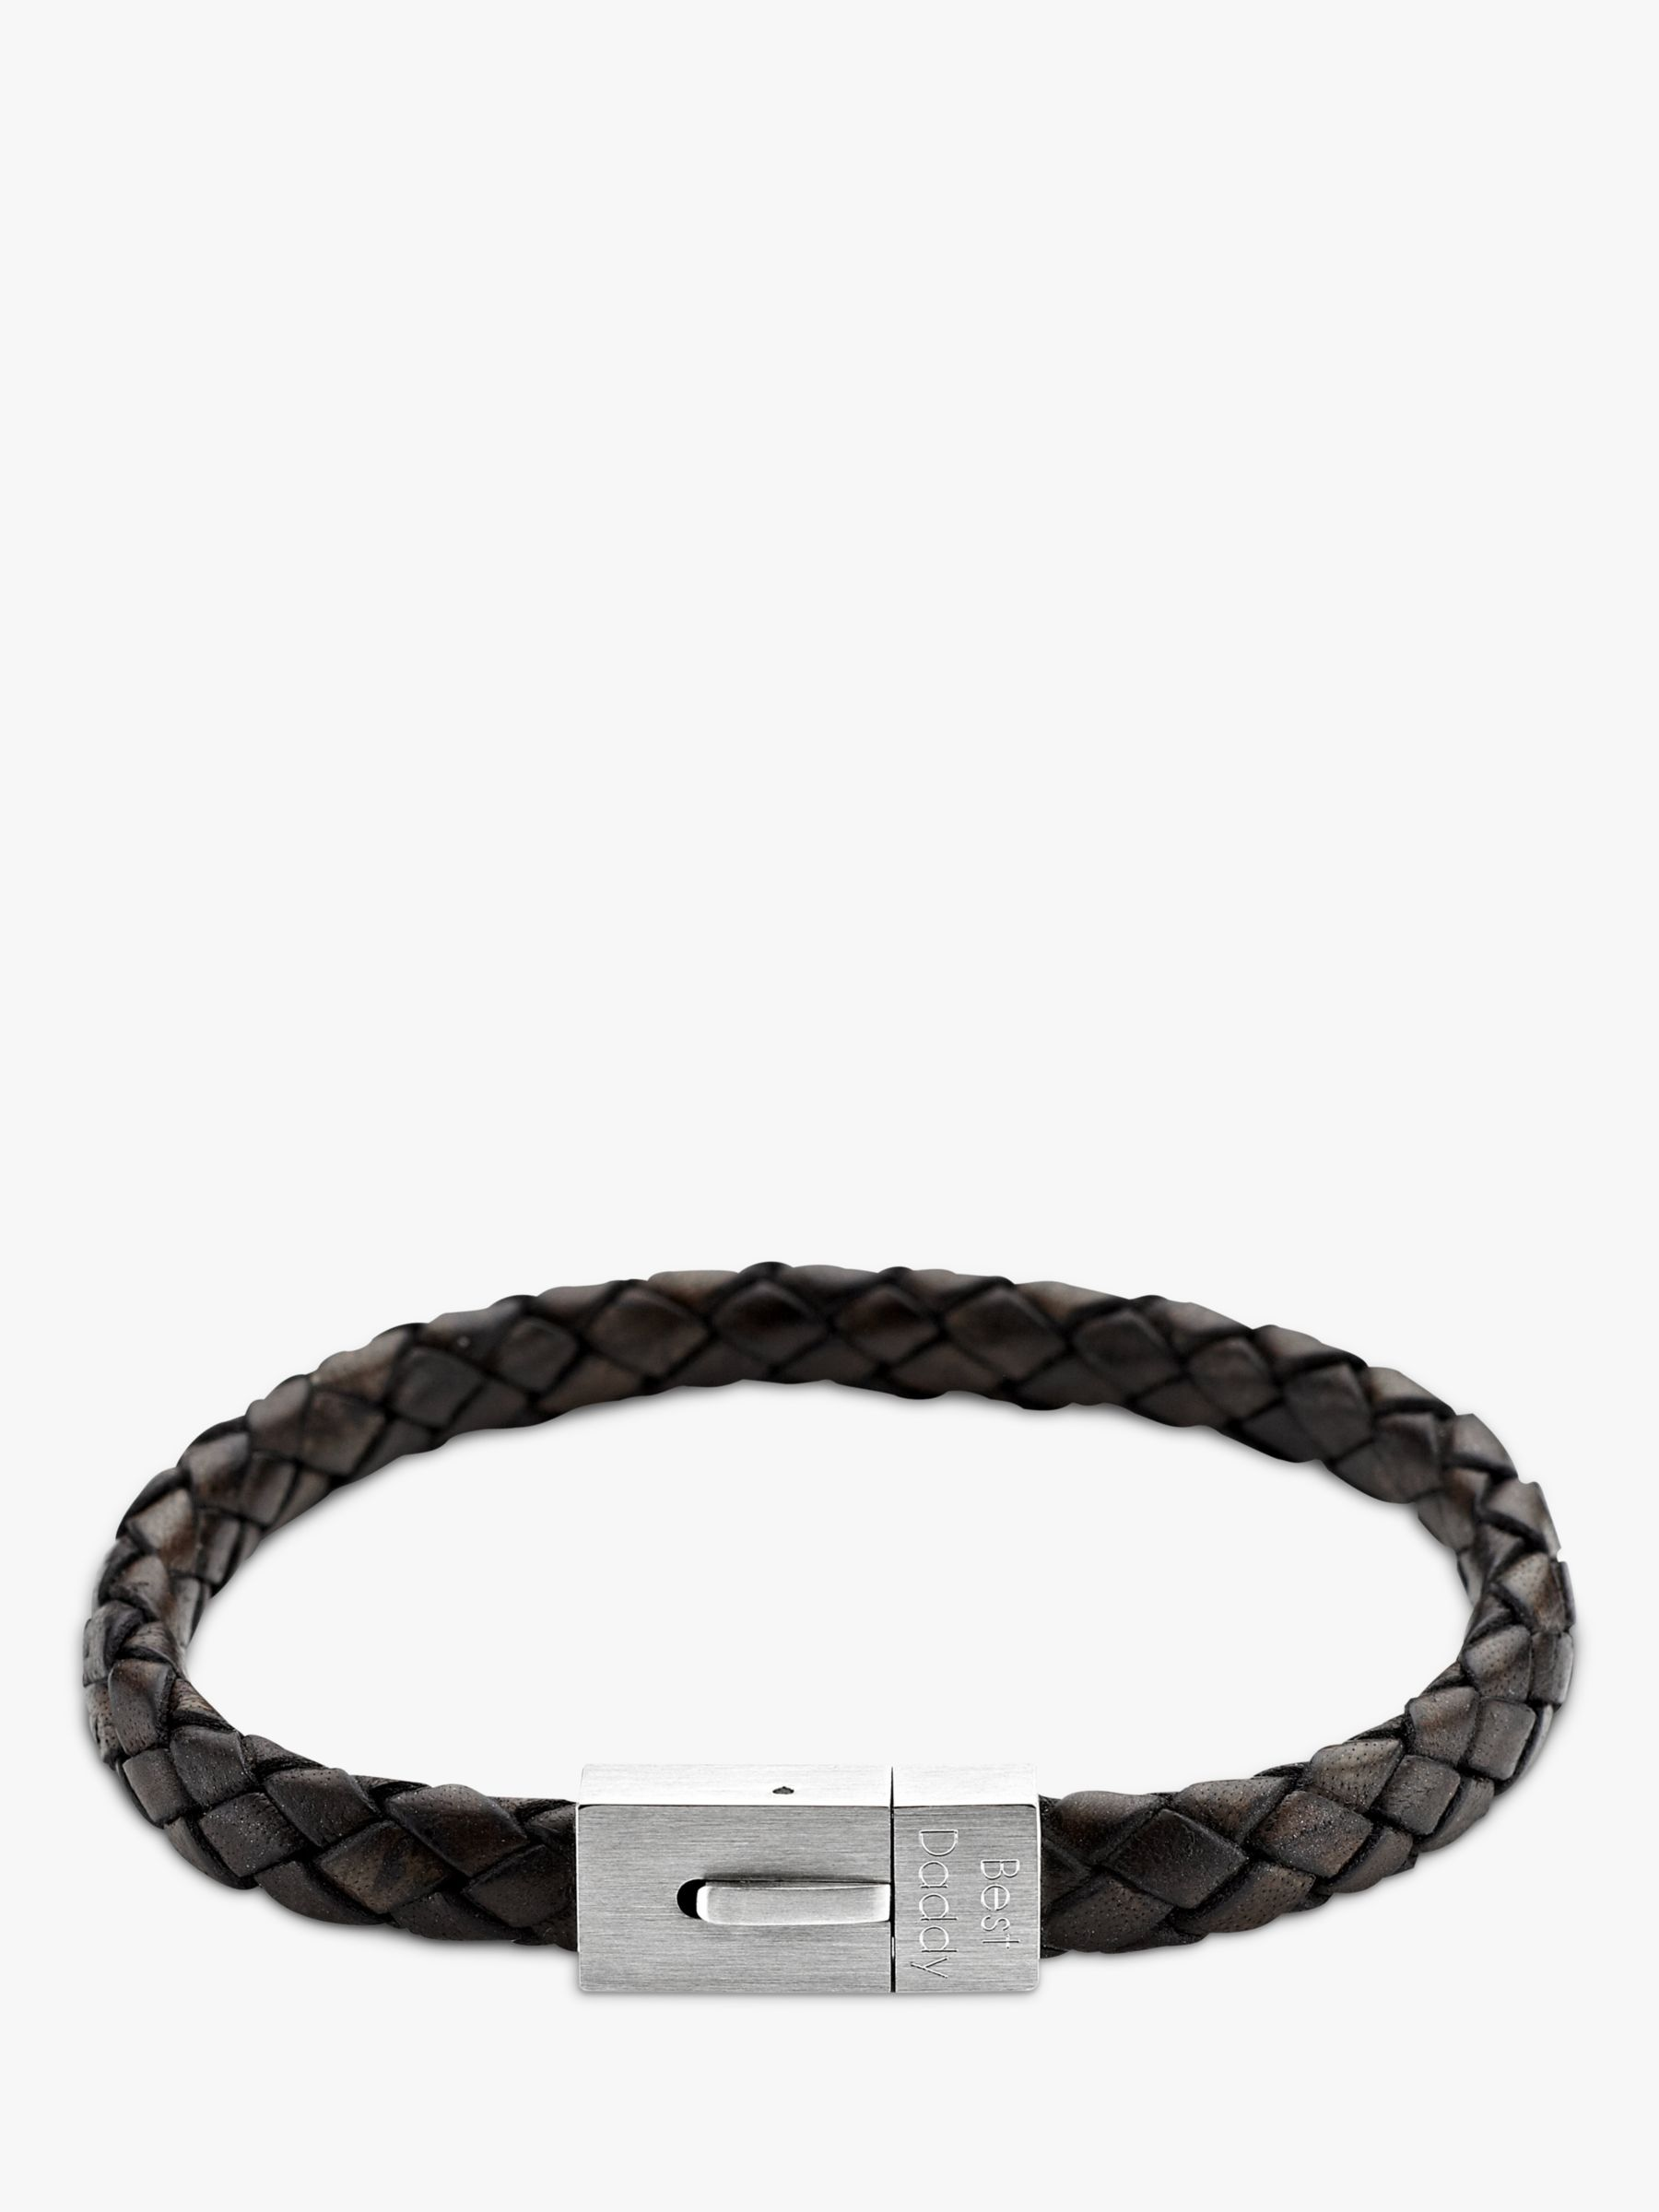 Under The Rose Under the Rose Personalised Men's Leather Bracelet, Brown